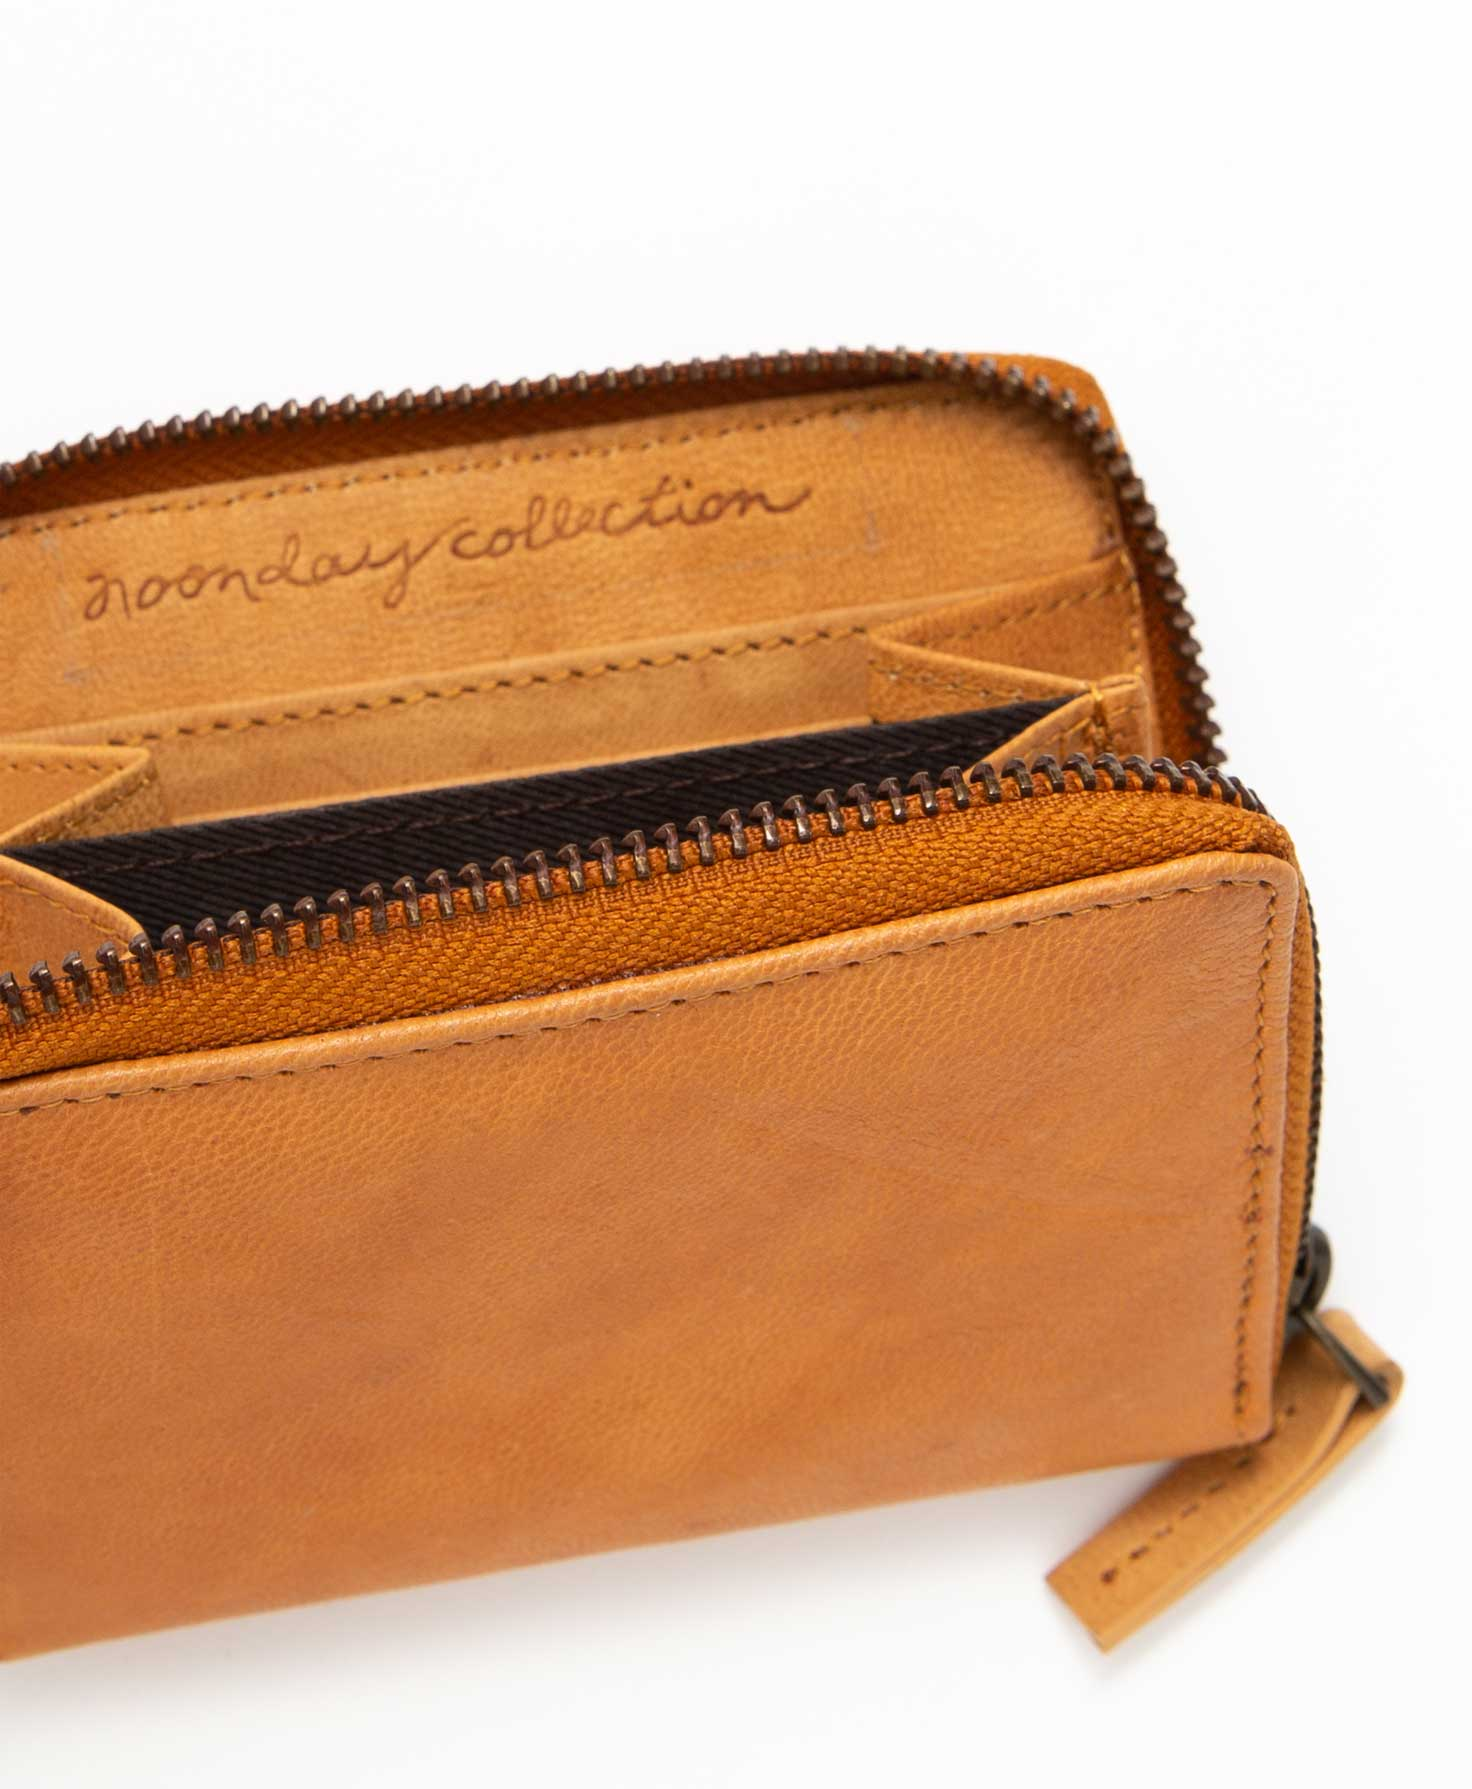 The Essential Leather Wallet sits upright. It is unzipped, revealing the inside of the wallet. The interior is the same neutral leather as the exterior. There is a Noonday Collection logo embossed on the inside. A few of the wallet's six internal card slots can be seen.